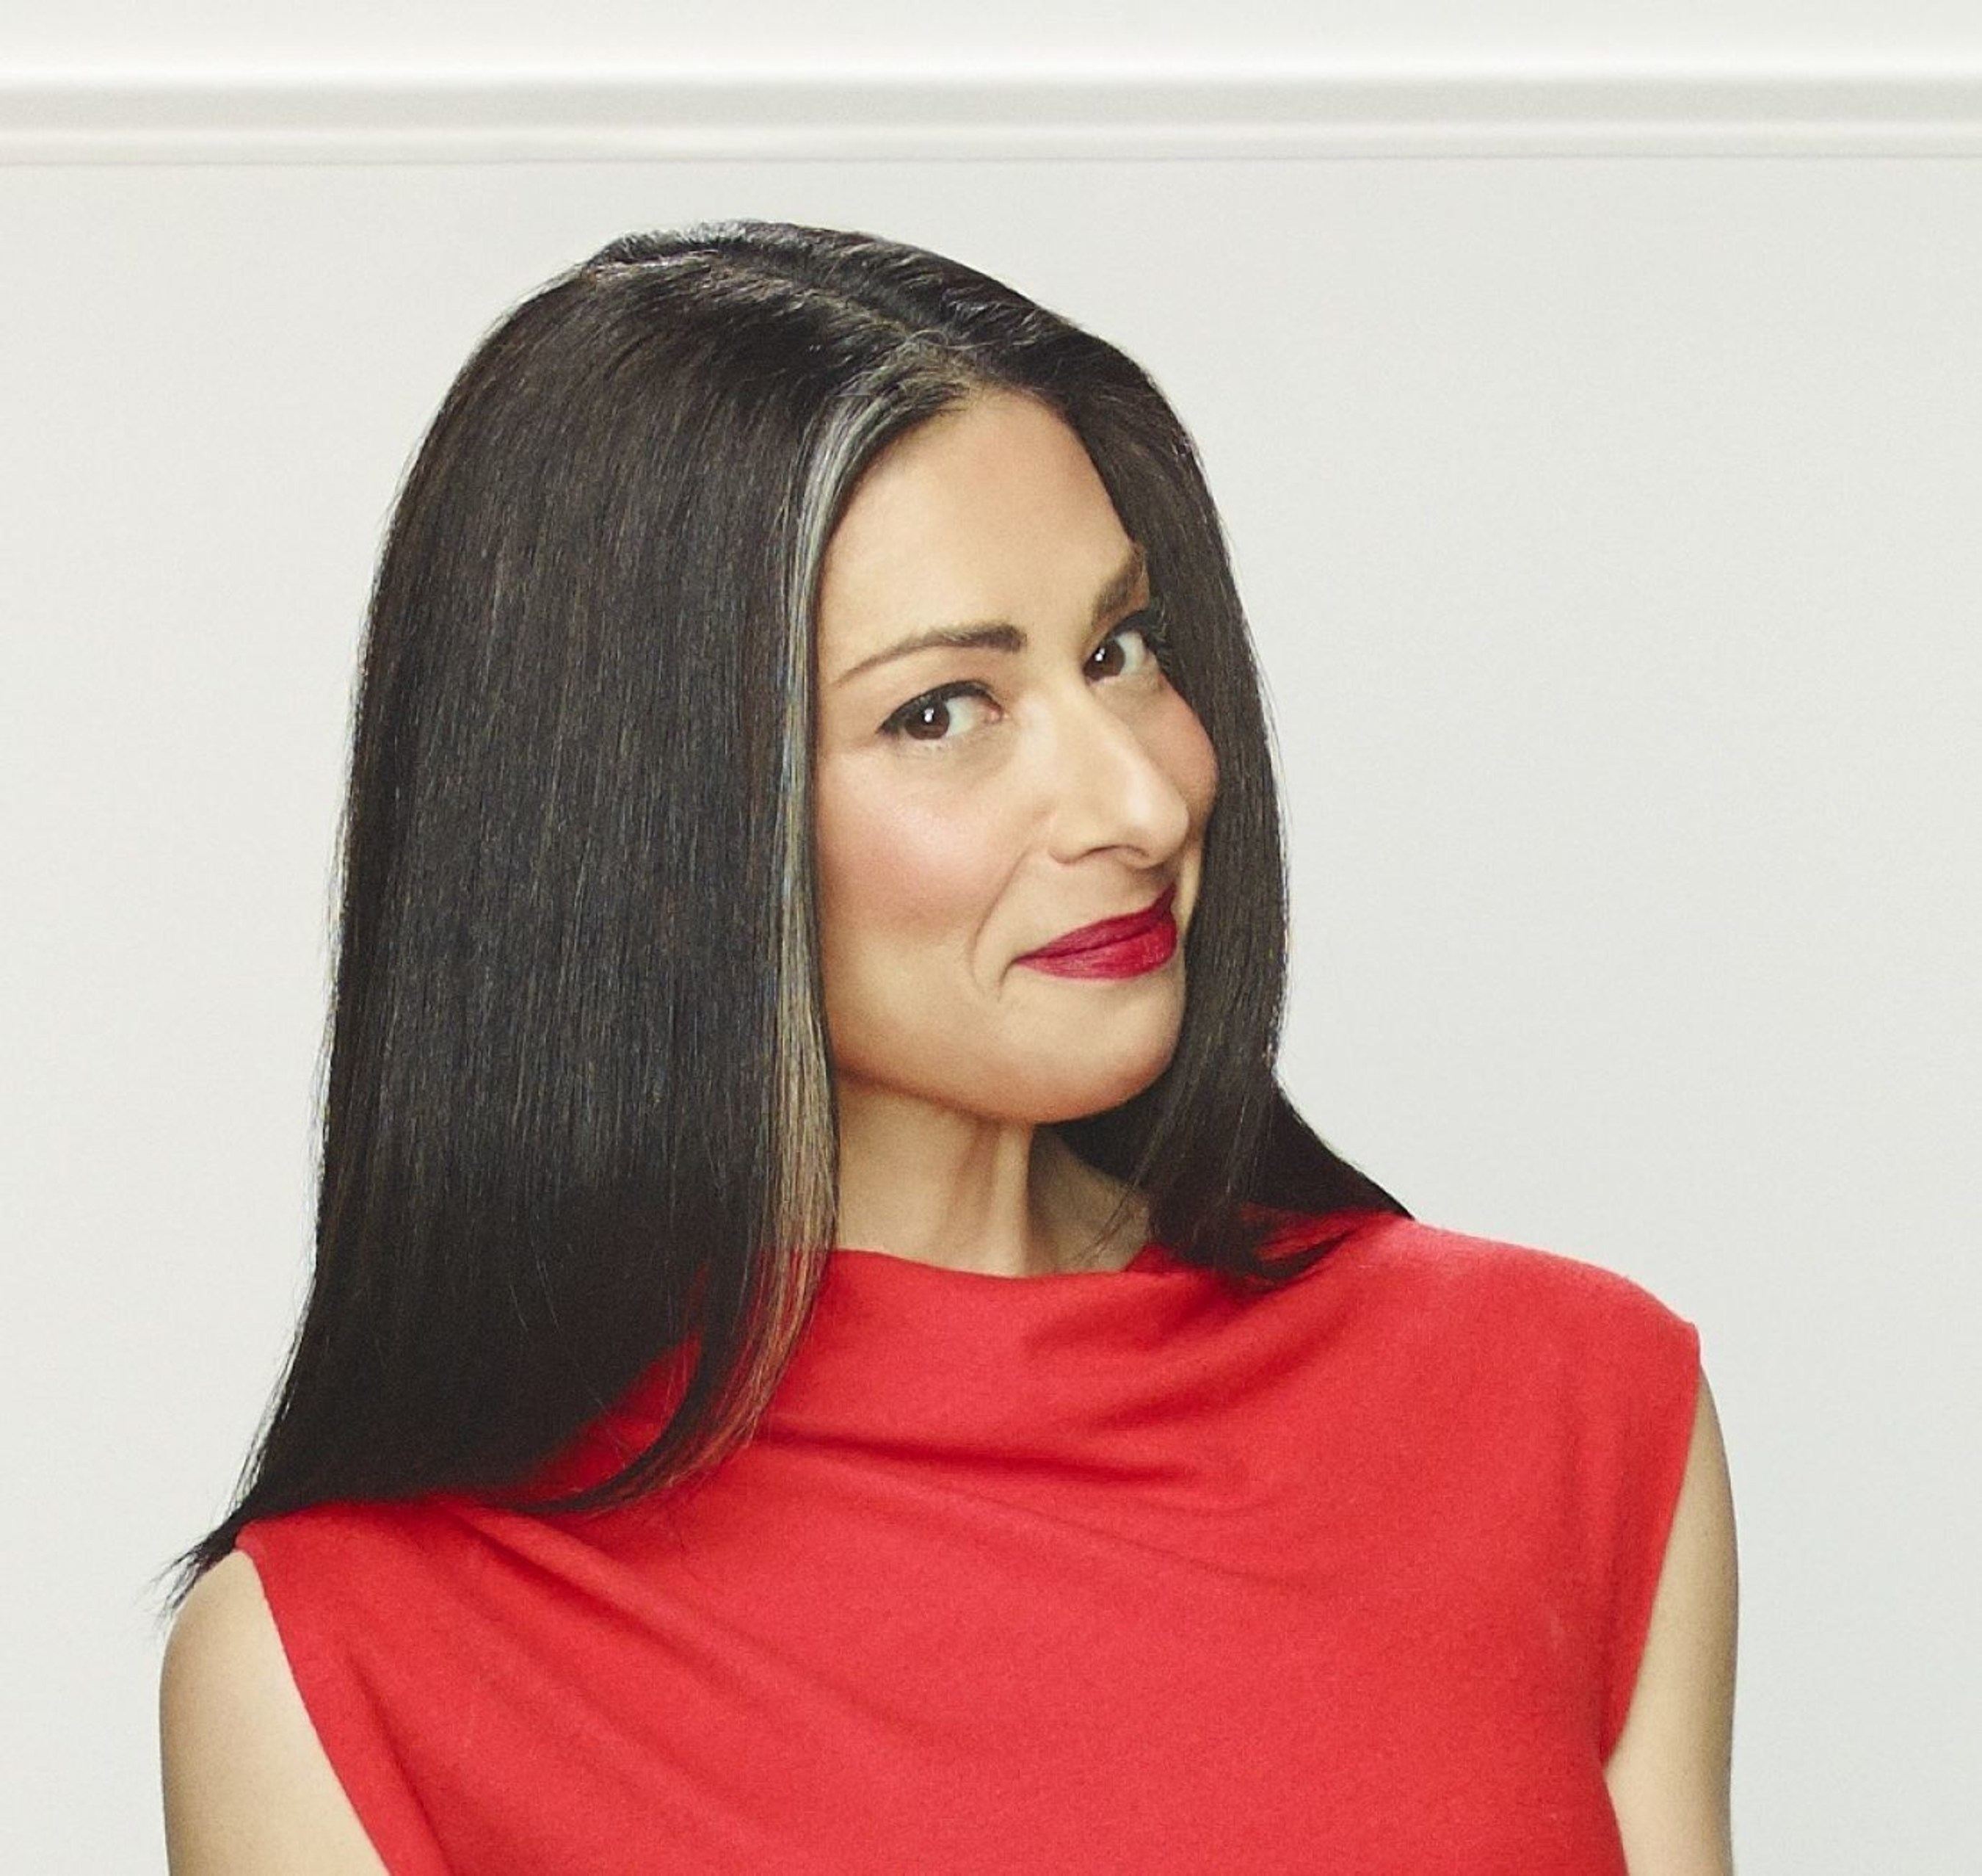 Princess Cruises and TLC, with the help of fashion expert Stacy London, introduce Style at Sea with TLC.